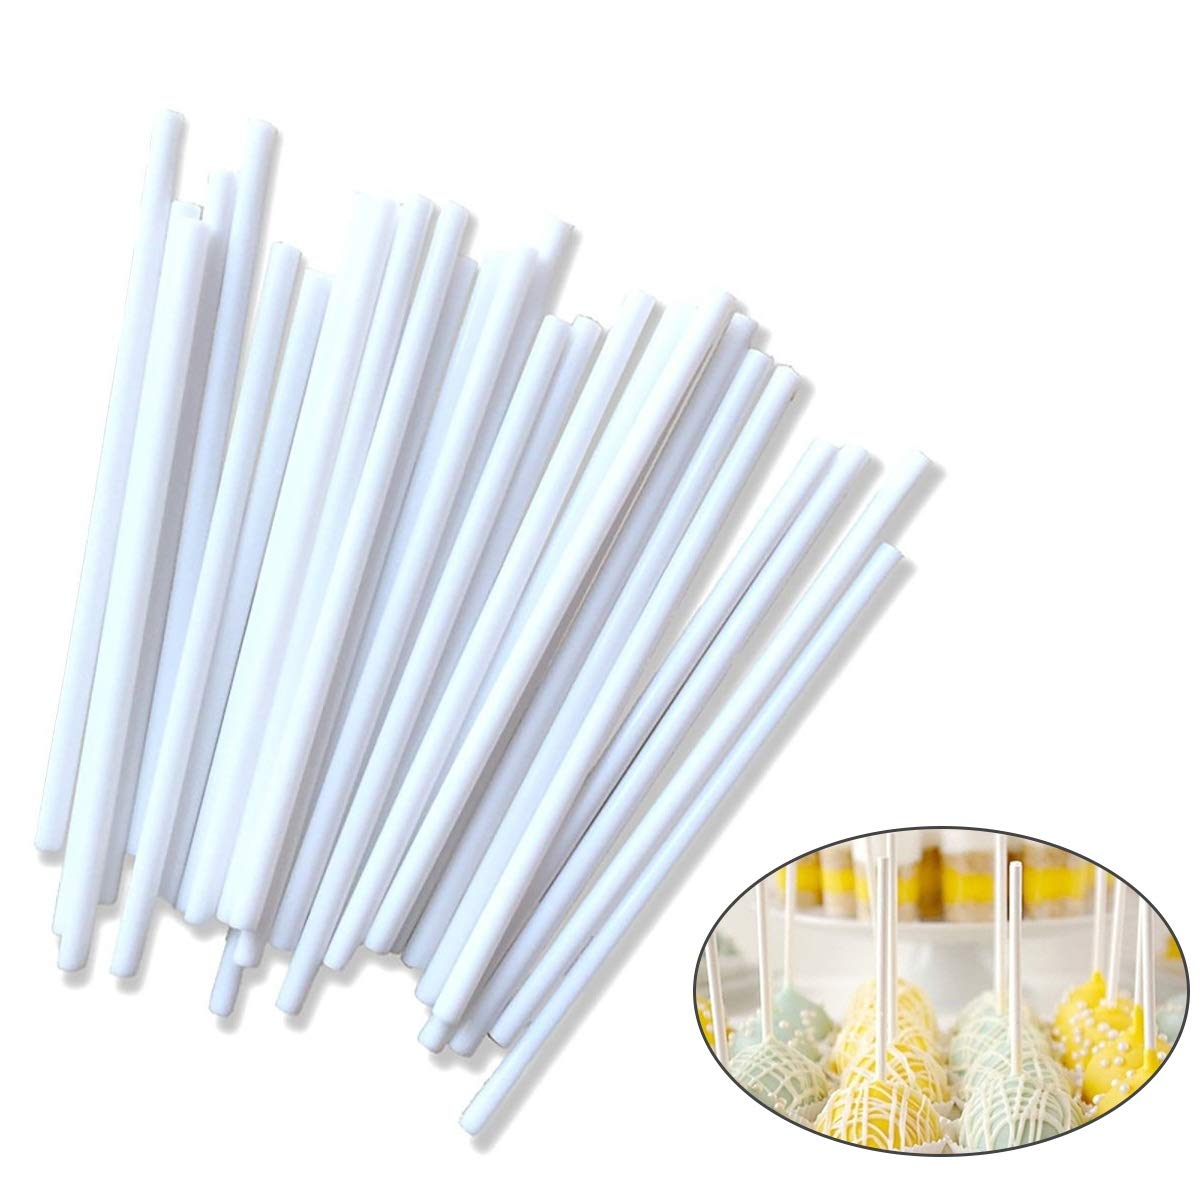 Aolvo Sucker Lollipop Sticks 4 Inch CHocolate Cake Candy Making Sticks DIY Hand Crafts(White)